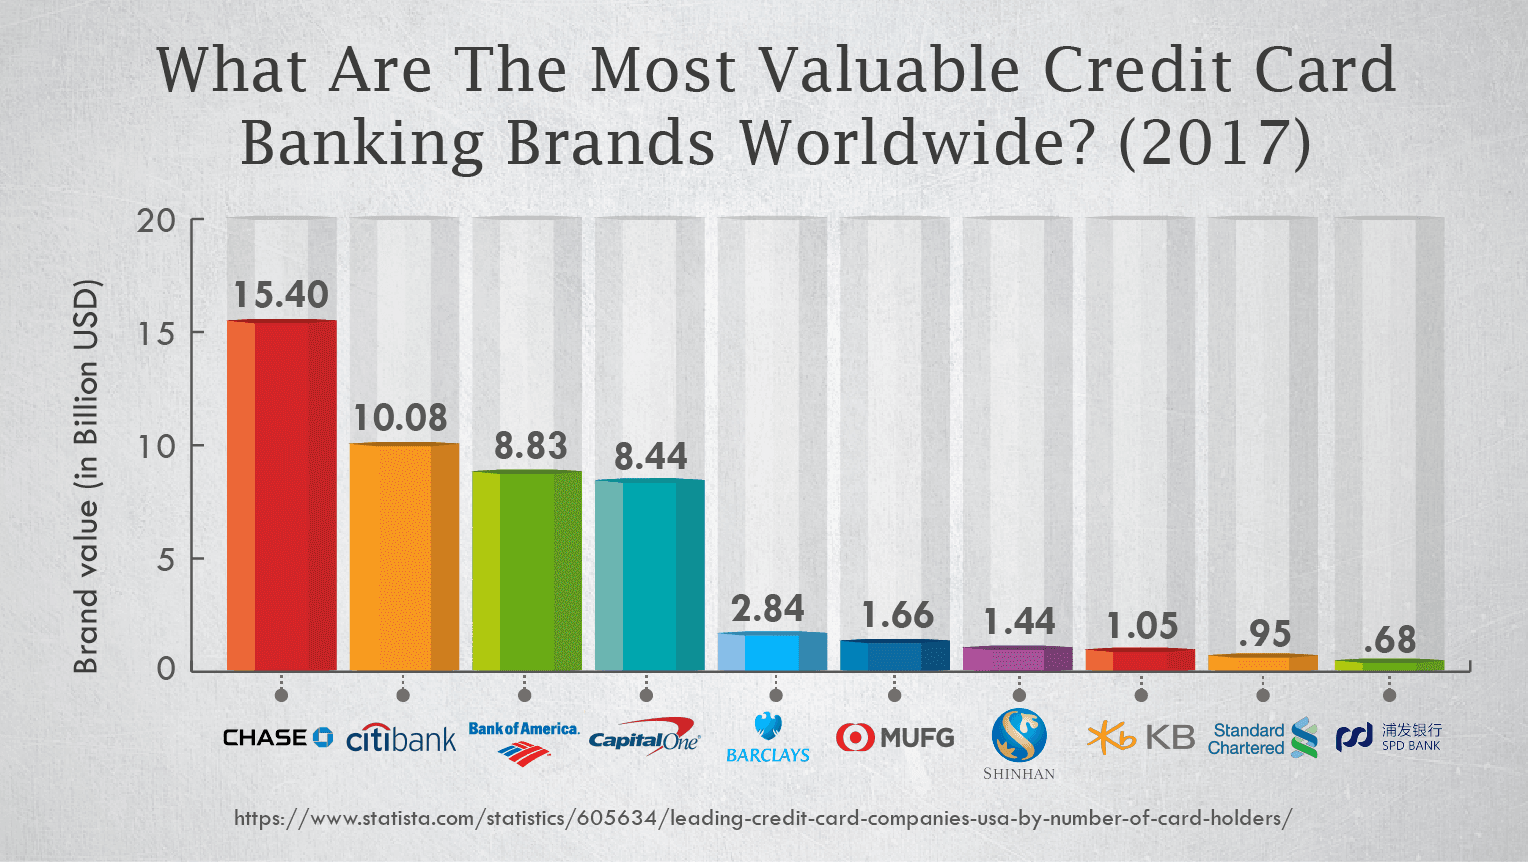 What Are The Most Valuable Credit Card Banking Brands Worldwide? (2017)